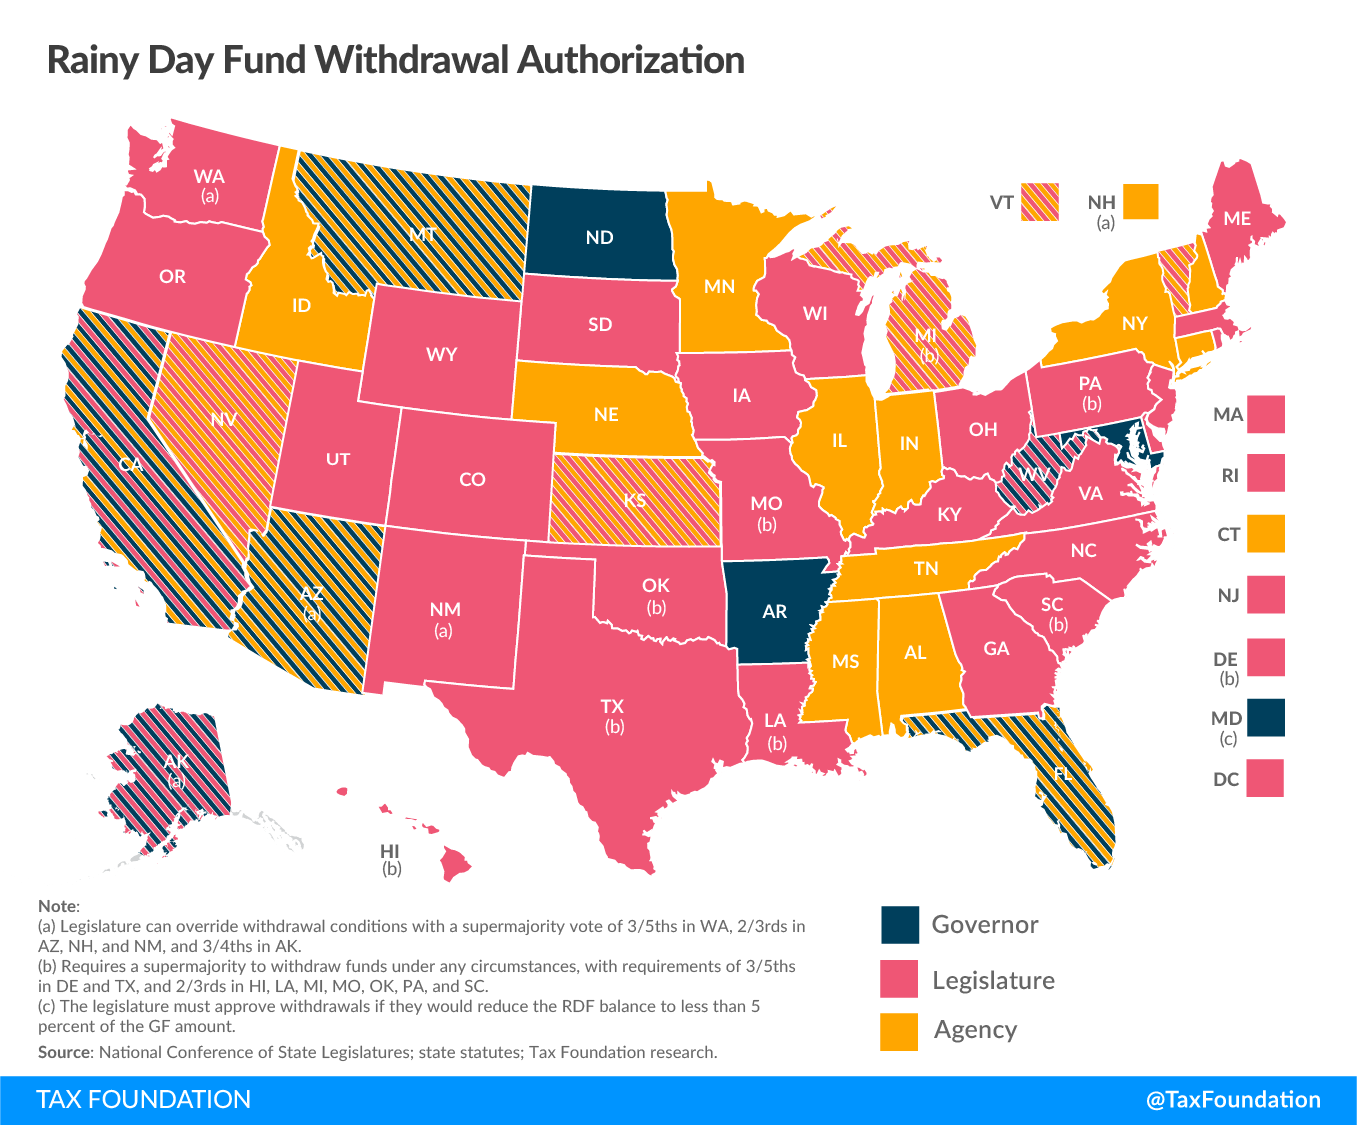 Who Can Authorize a Withdrawal from A Rainy Day Fund? State Rainy Day Fund Withdrawal Authorization